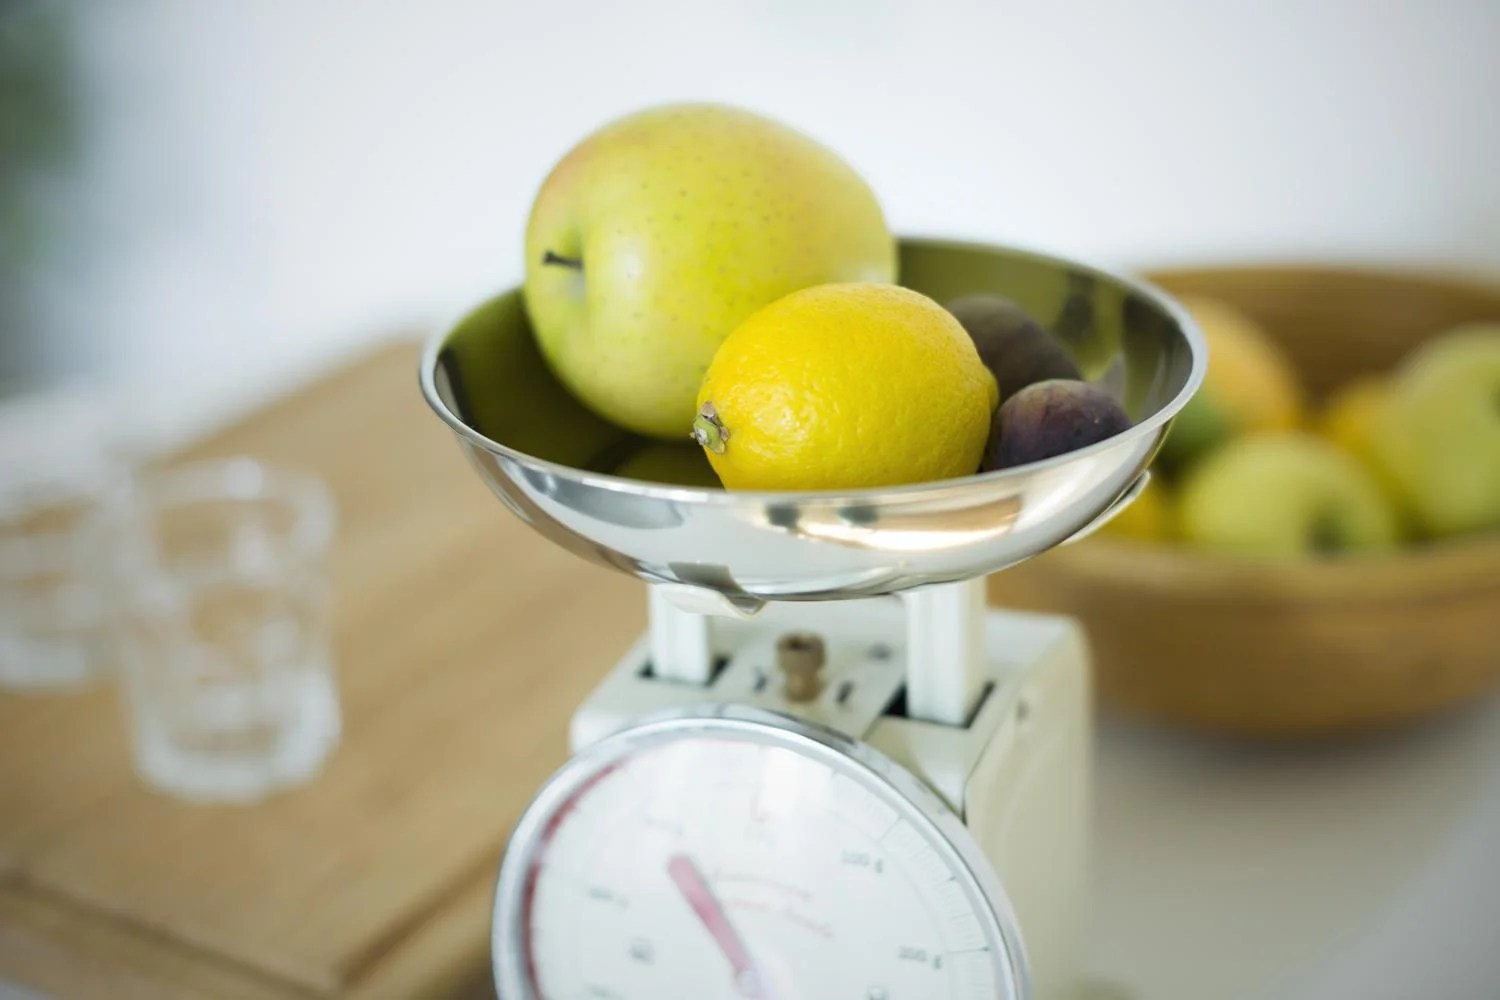 kitchen weight scale tiny table best electronic digital mechanical weighing scales from classic to high tech here s our guide the niftiest devices for your